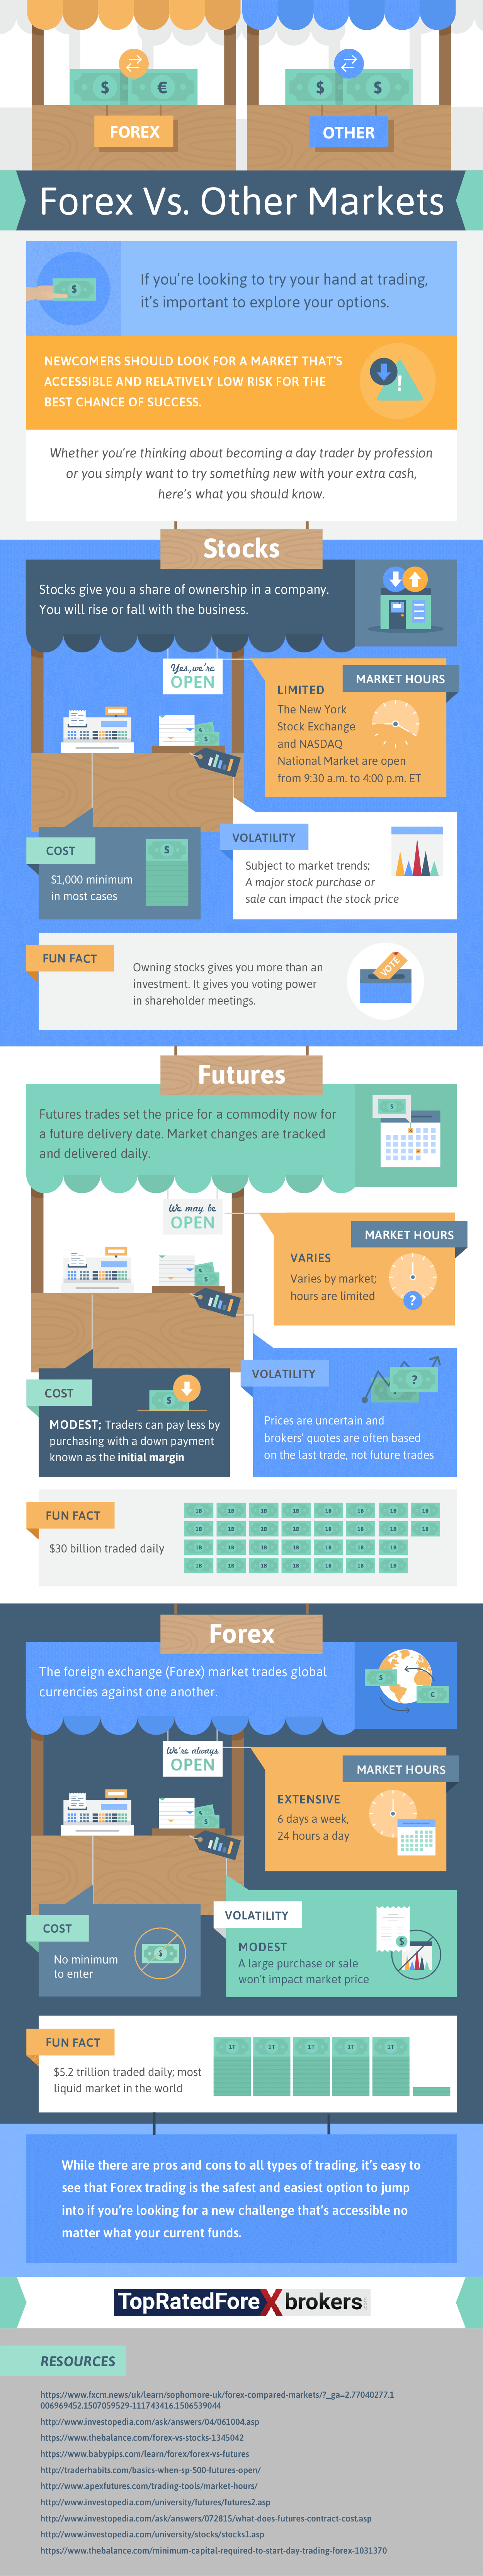 Infographic on Investment Trader